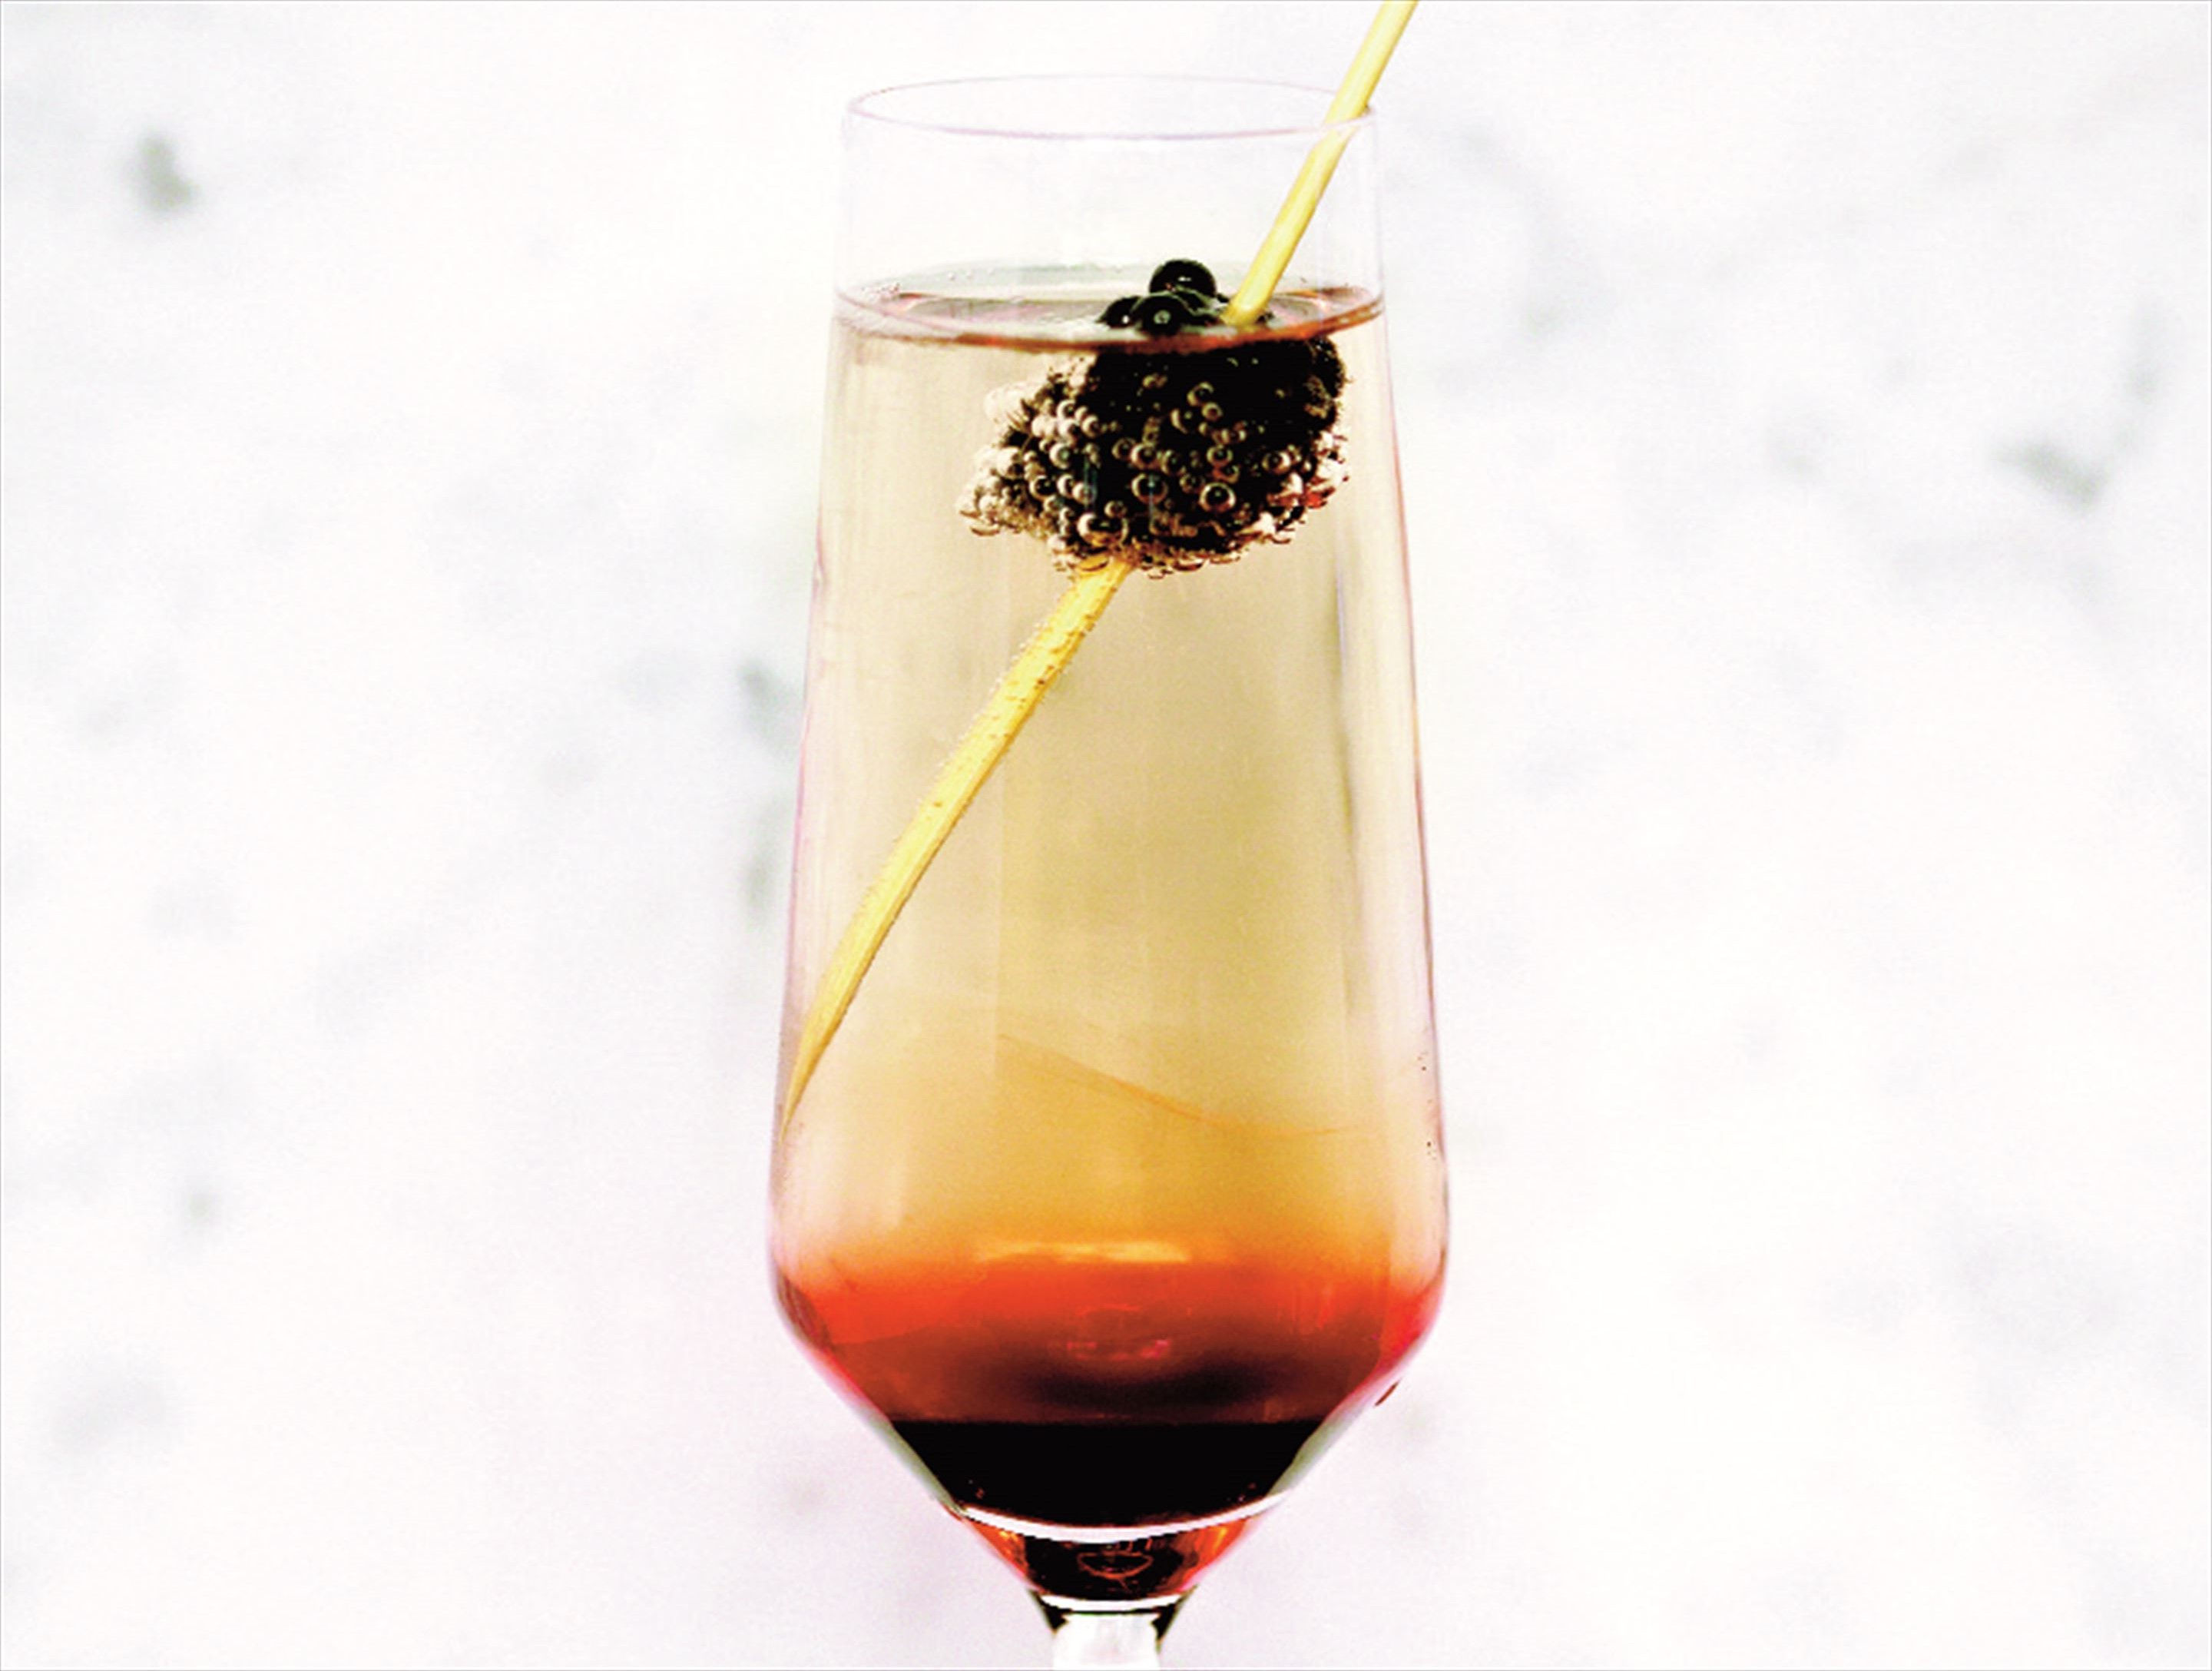 Spiced kir royale